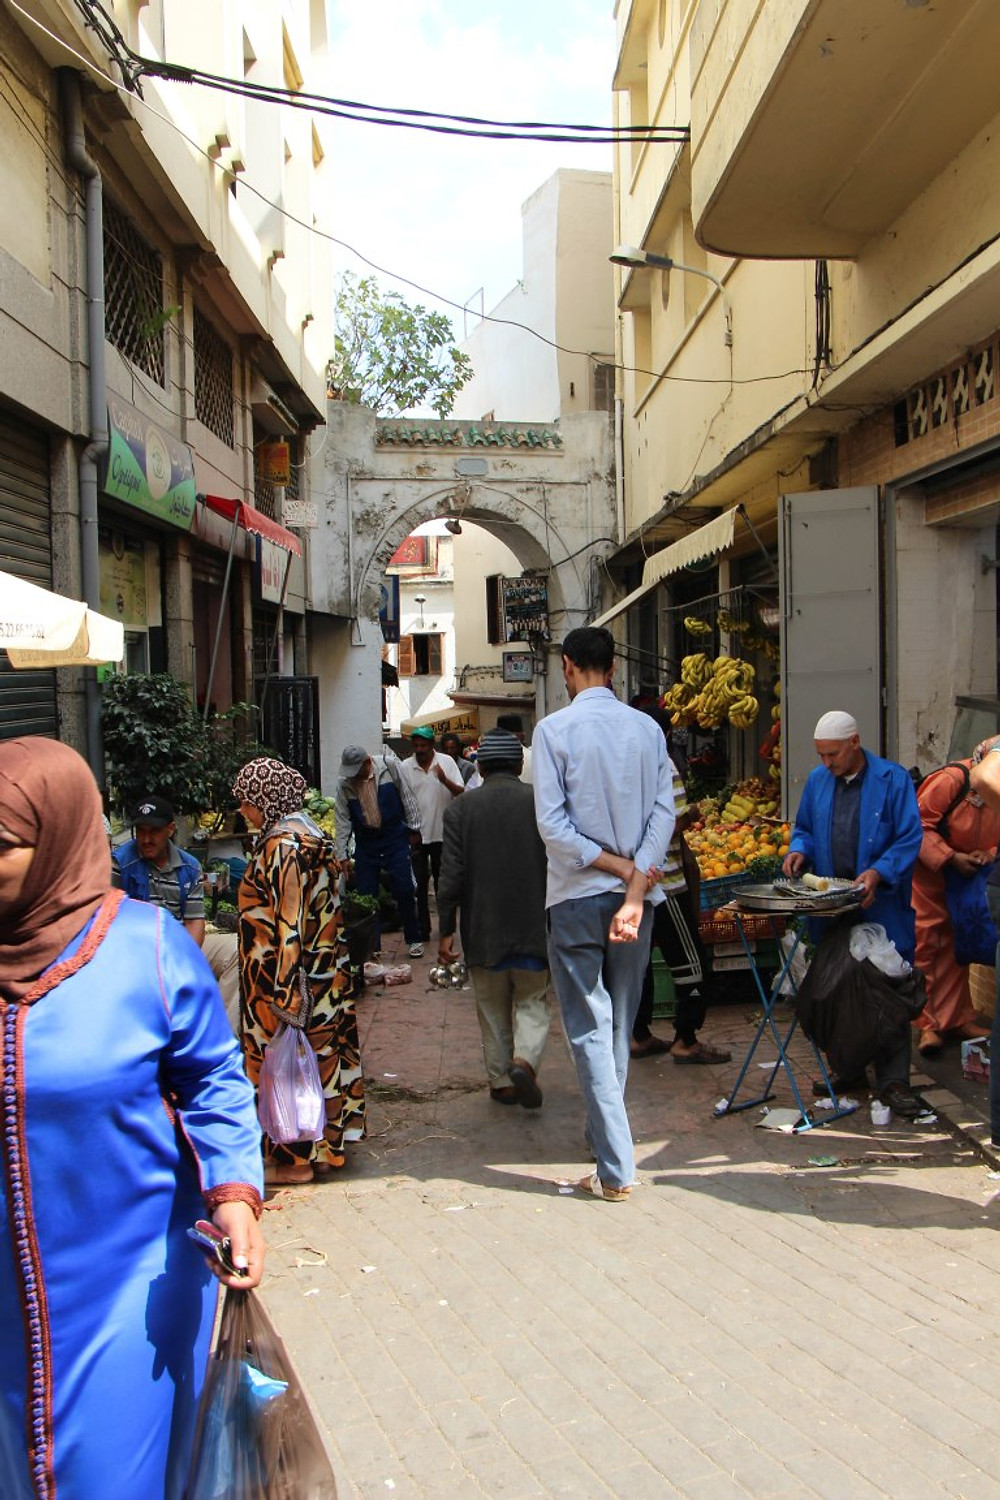 """Walking through the """"medina"""", the old city/marketplace in Tangier."""